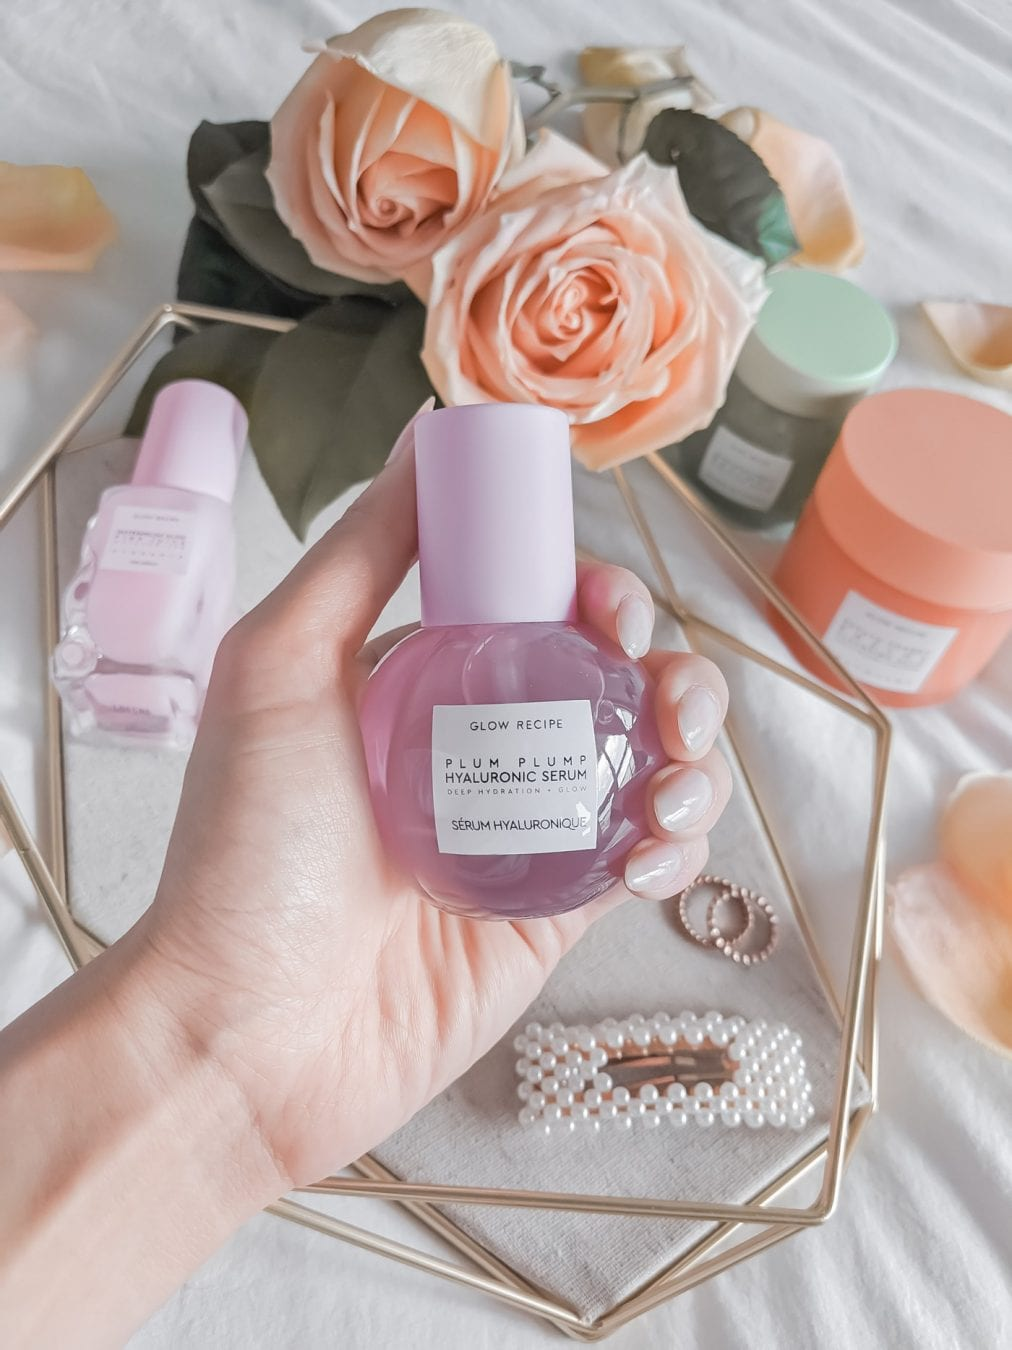 After application, my face feels plump, smooth, and ready for makeup application — and the cute bottle doesn't hurt, either. Glow Recipe's Plump Plum Hyalauronic Serum